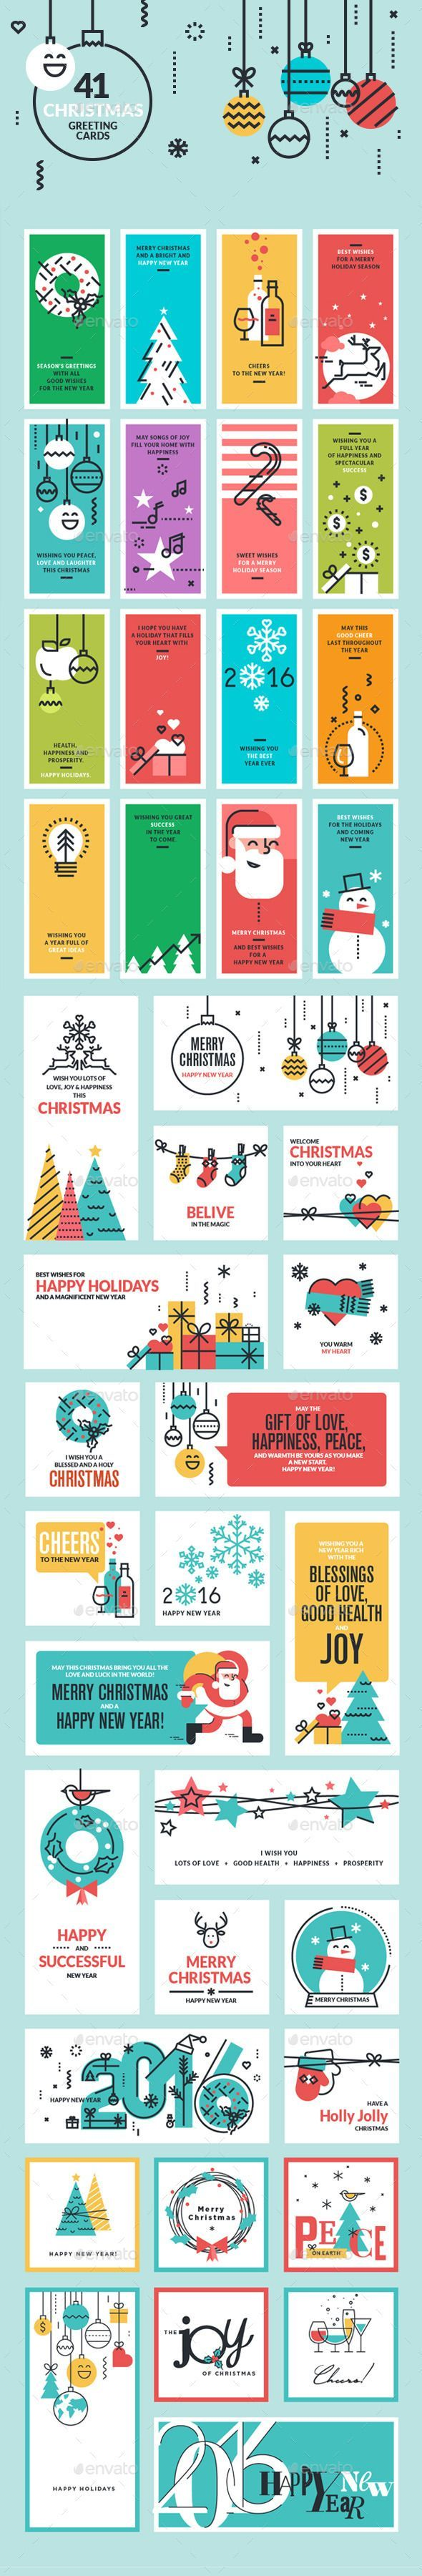 2018 Christmas and New Year Greeting Cards and Banners